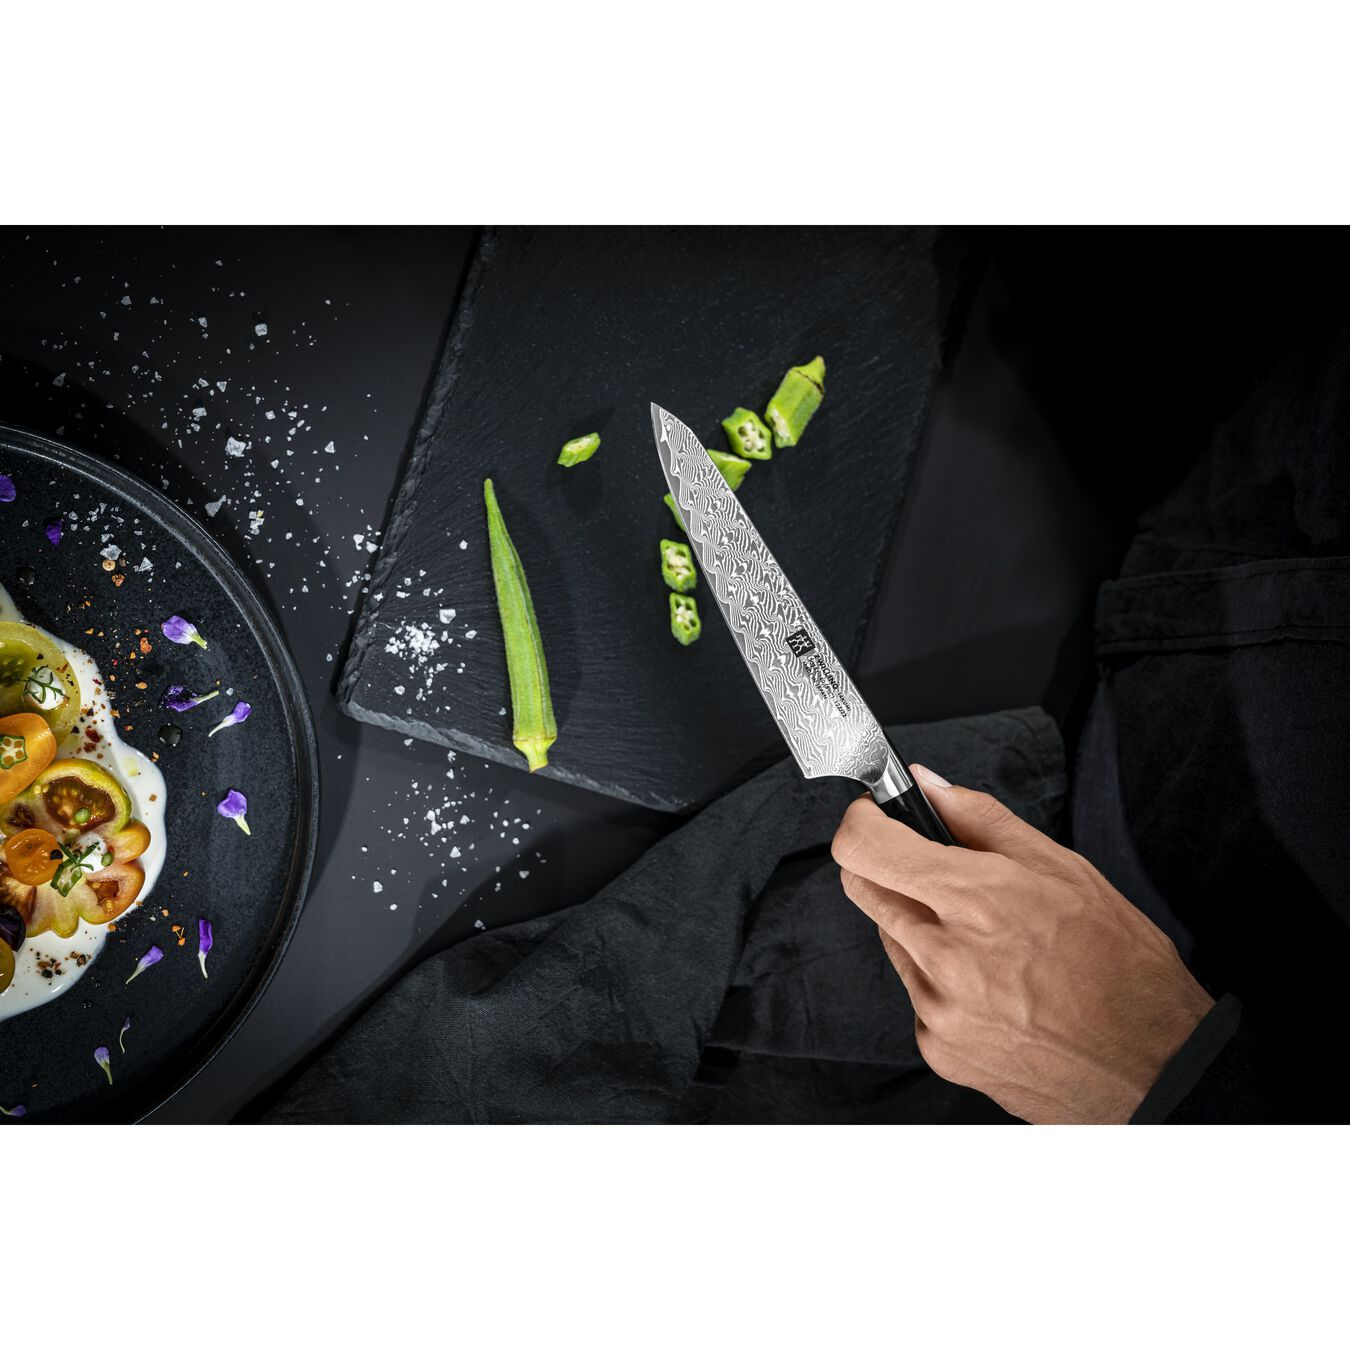 5.5 inch Chef's knife compact,,large 3